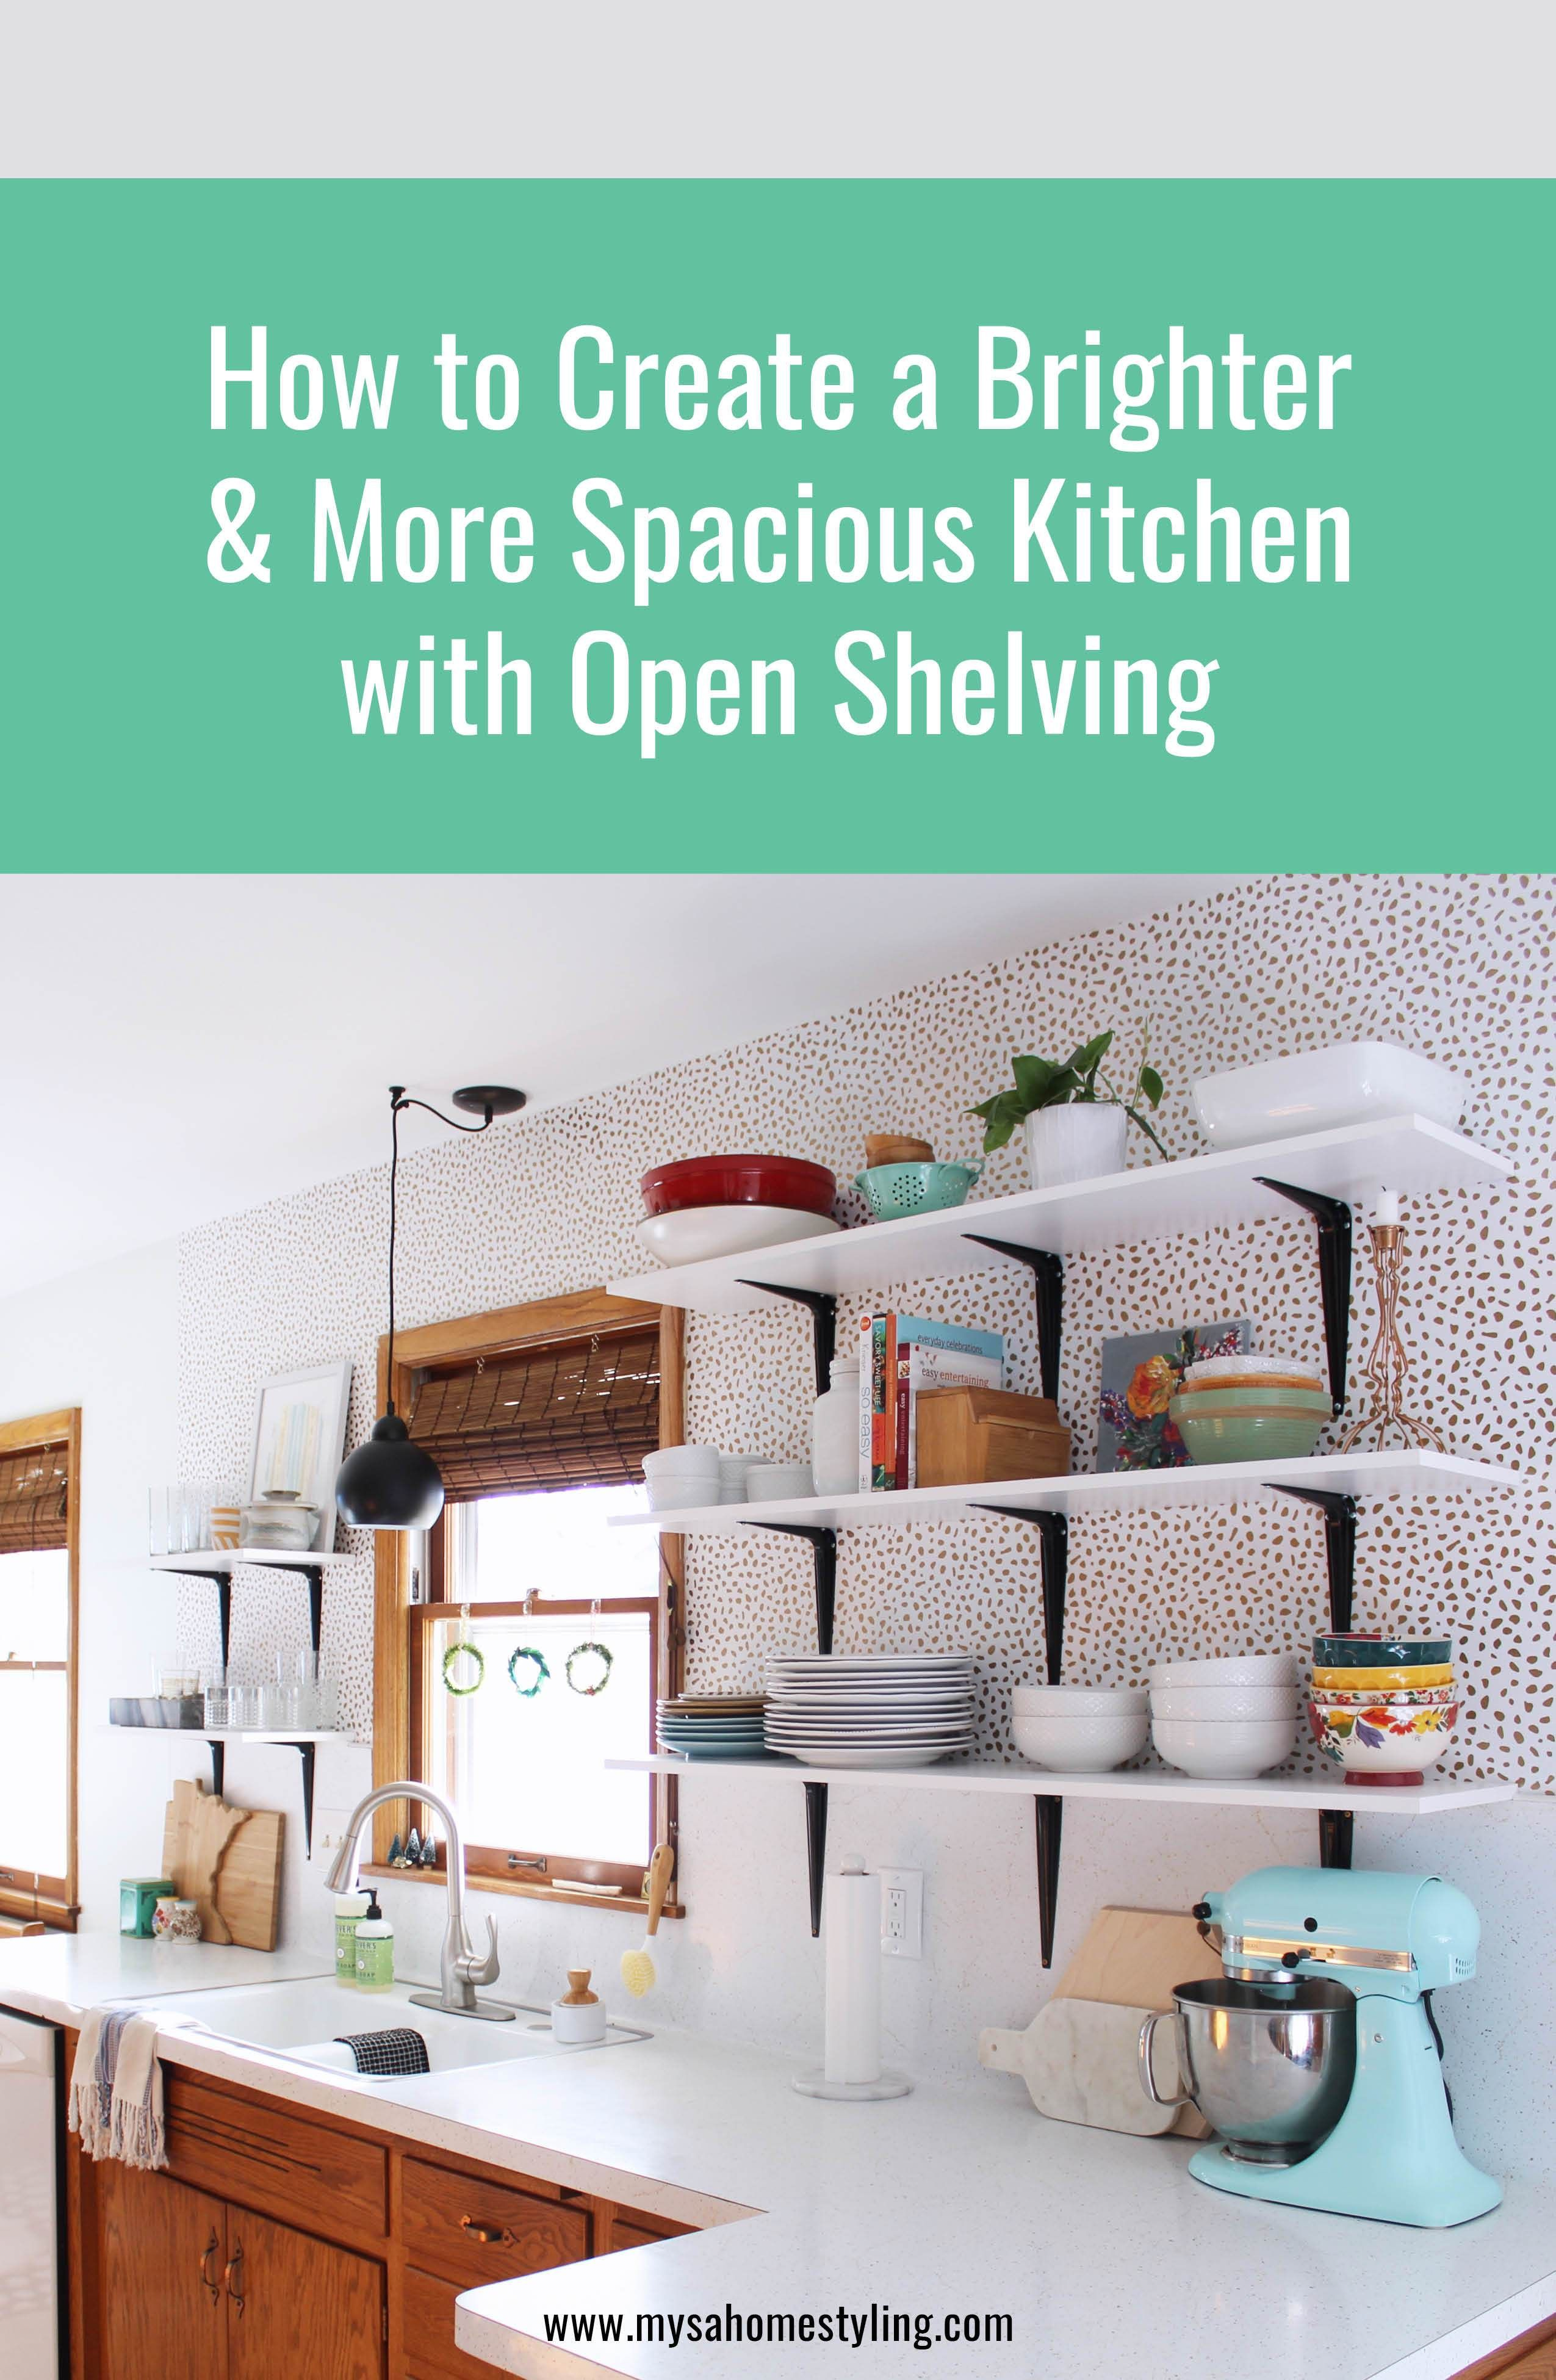 How to Create a Brighter & More Spacious Kitchen with Open Shelving ...